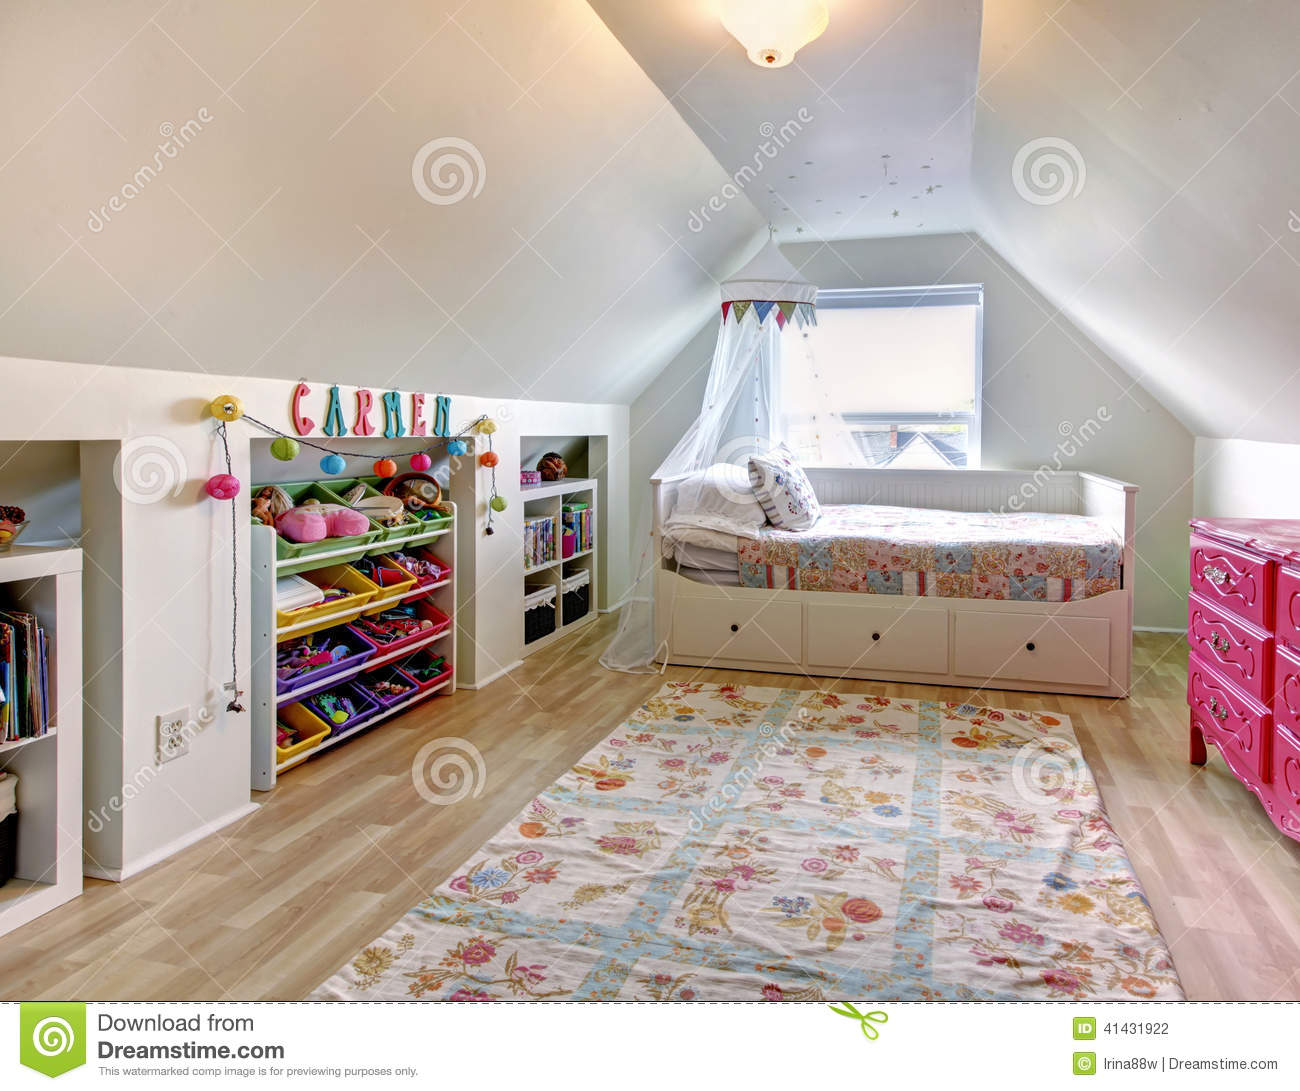 Early American Bedroom Furniture Vaulted Ceiling Bedroom Bedroom Furniture Oak Bedroom Bed Head Ideas: Kids Room In Old House Stock Photo. Image Of Design